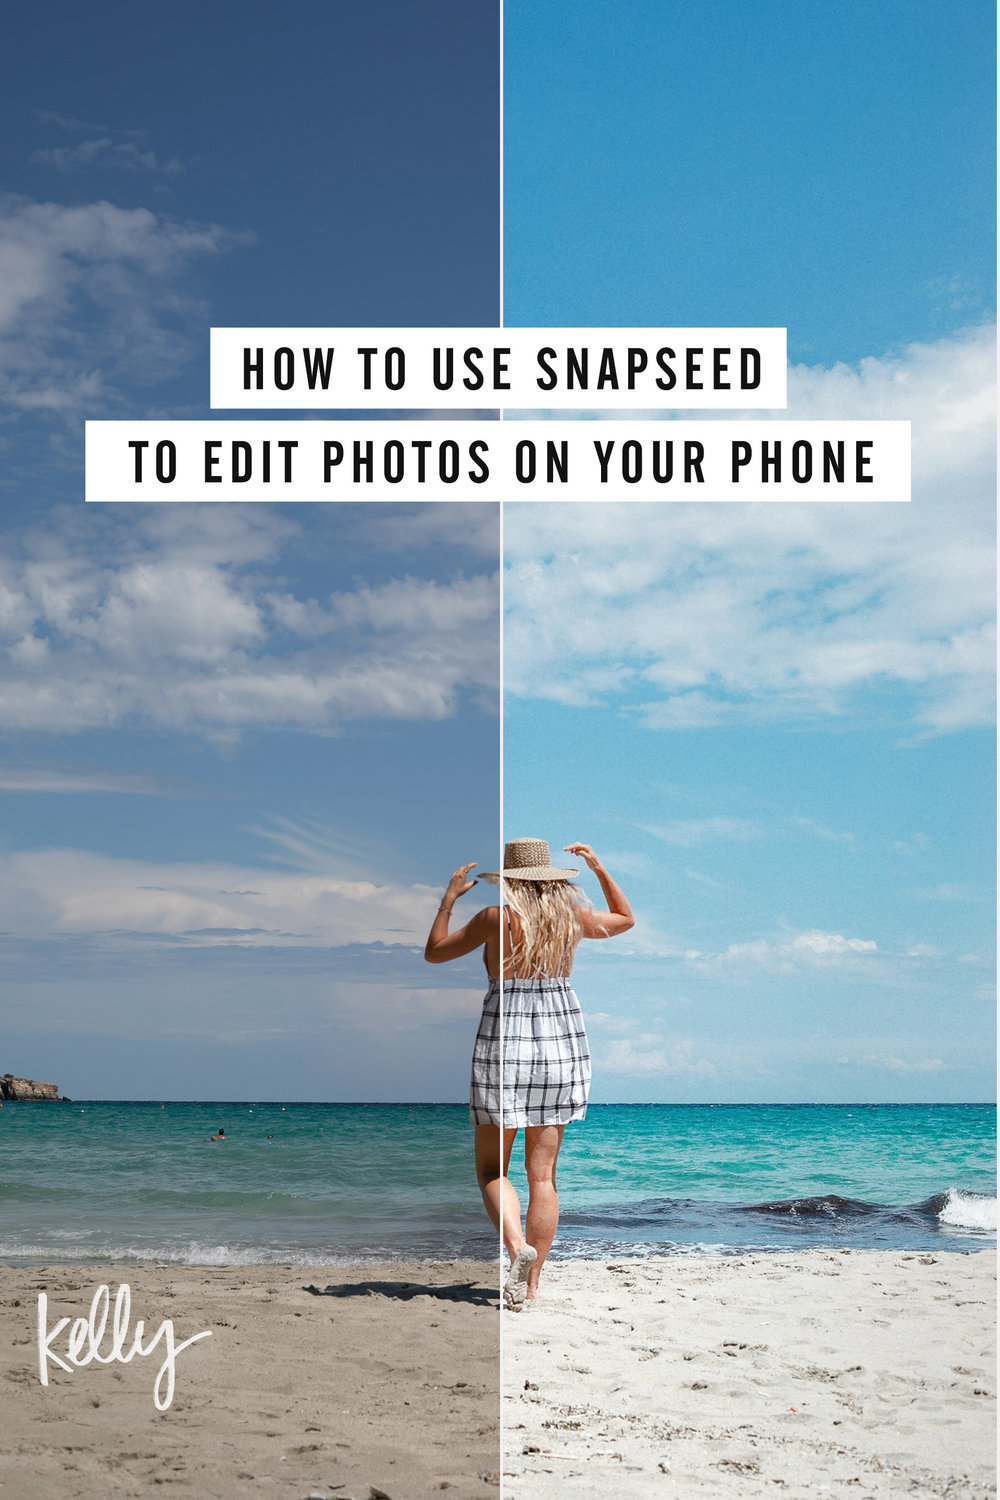 How to Use Snapseed to Edit Photos on Your Phone